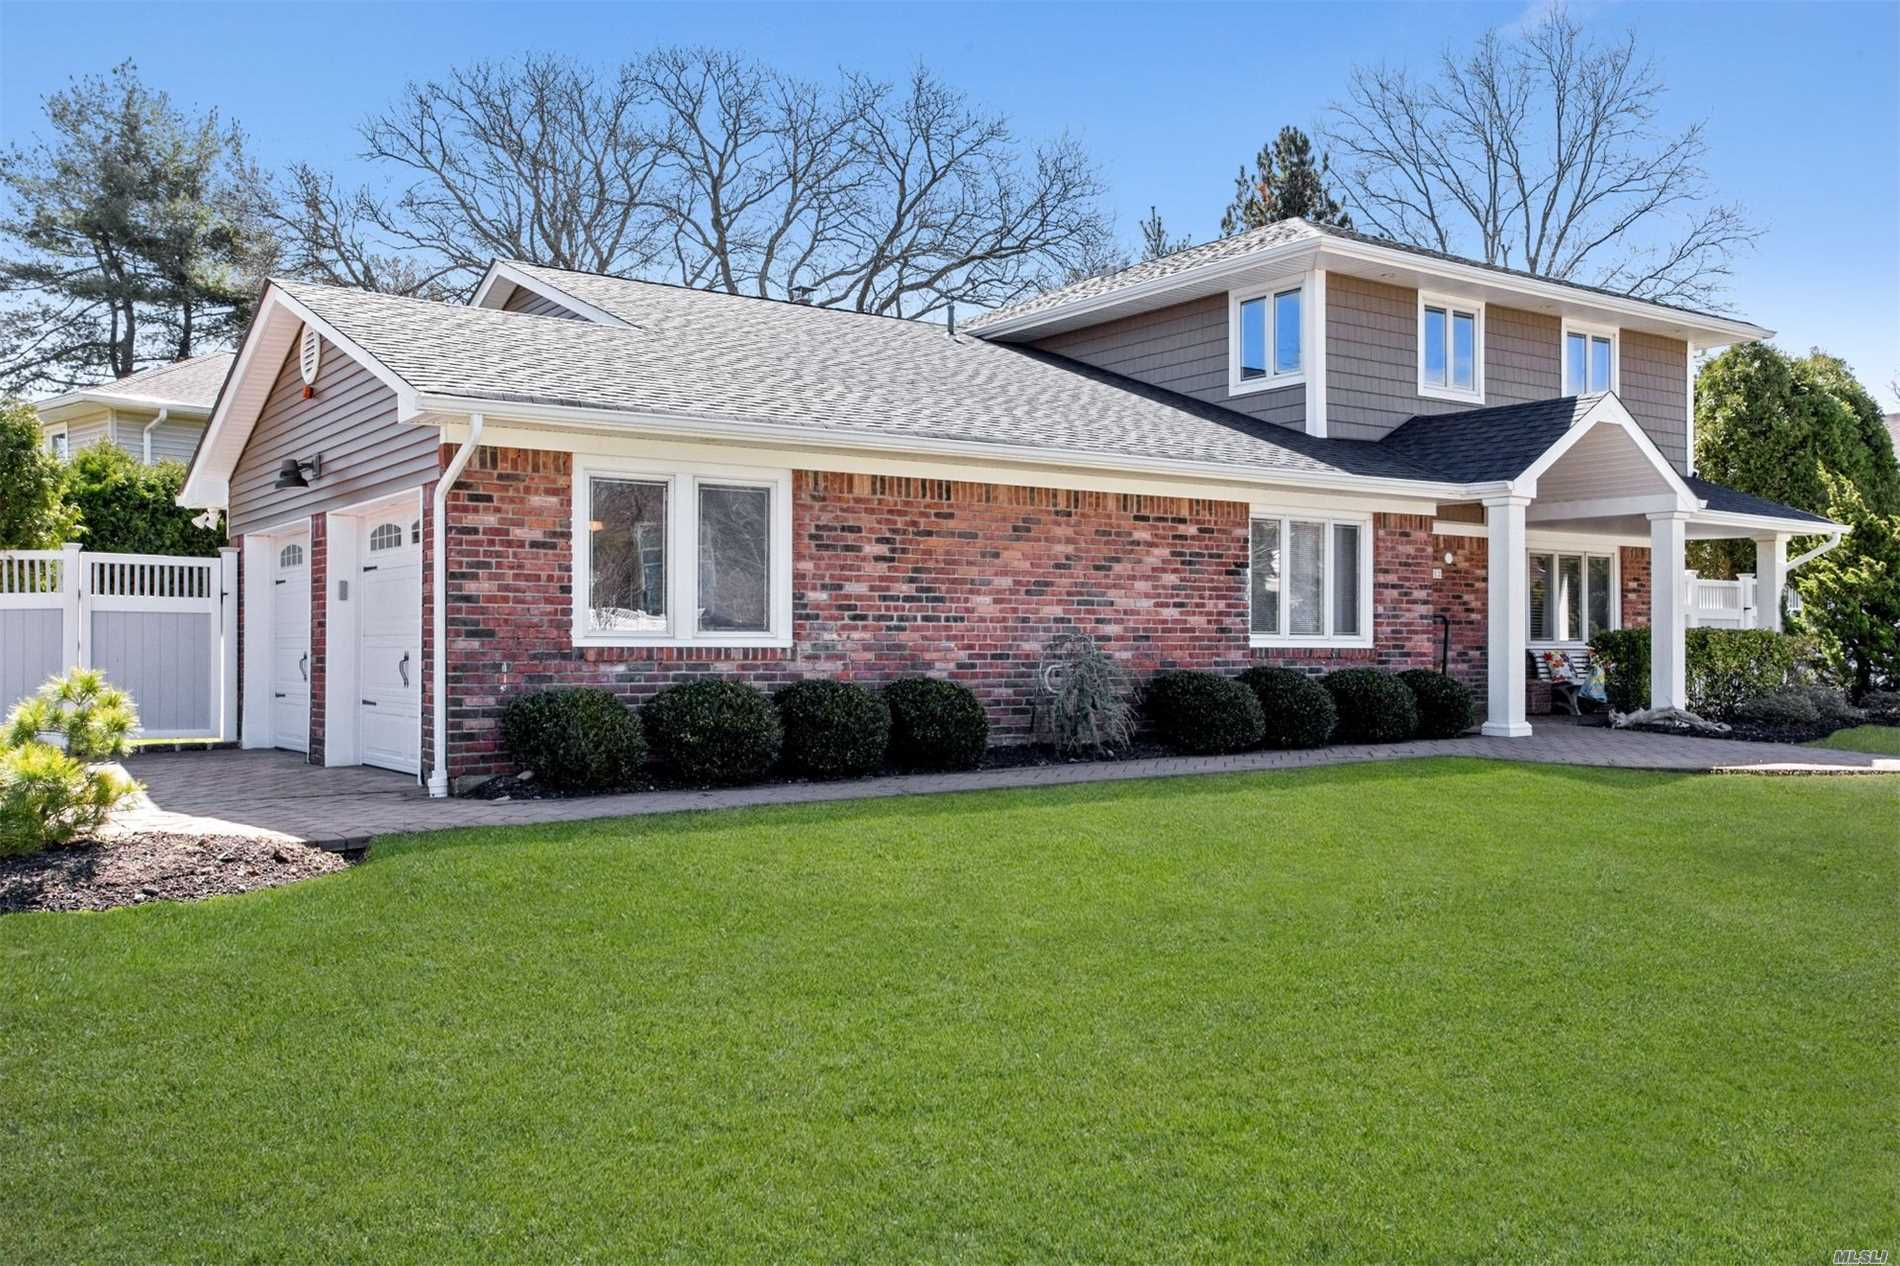 All Redone & Ready For You. 4 Bedroom 3 Bath Beauty Totally Redesigned The Open Floor Plan You Have Been Looking For.Gorgeous Gourmet EIK W Center Island Stainless Steel Appliances Wine Fridge& More. Eik Opens To Great Rm Beautiful Stacked Stone f/p Master Suite Has Spectacular Expanded Bath & Huge Walk In Closet That Is The Envy Of All. Exquisite Front Paver Walkway & Driveway Wonderful Curb Appeal Updated Roof Windows & Siding New CAC and Heating System New Stylish Wood Floor A Must See